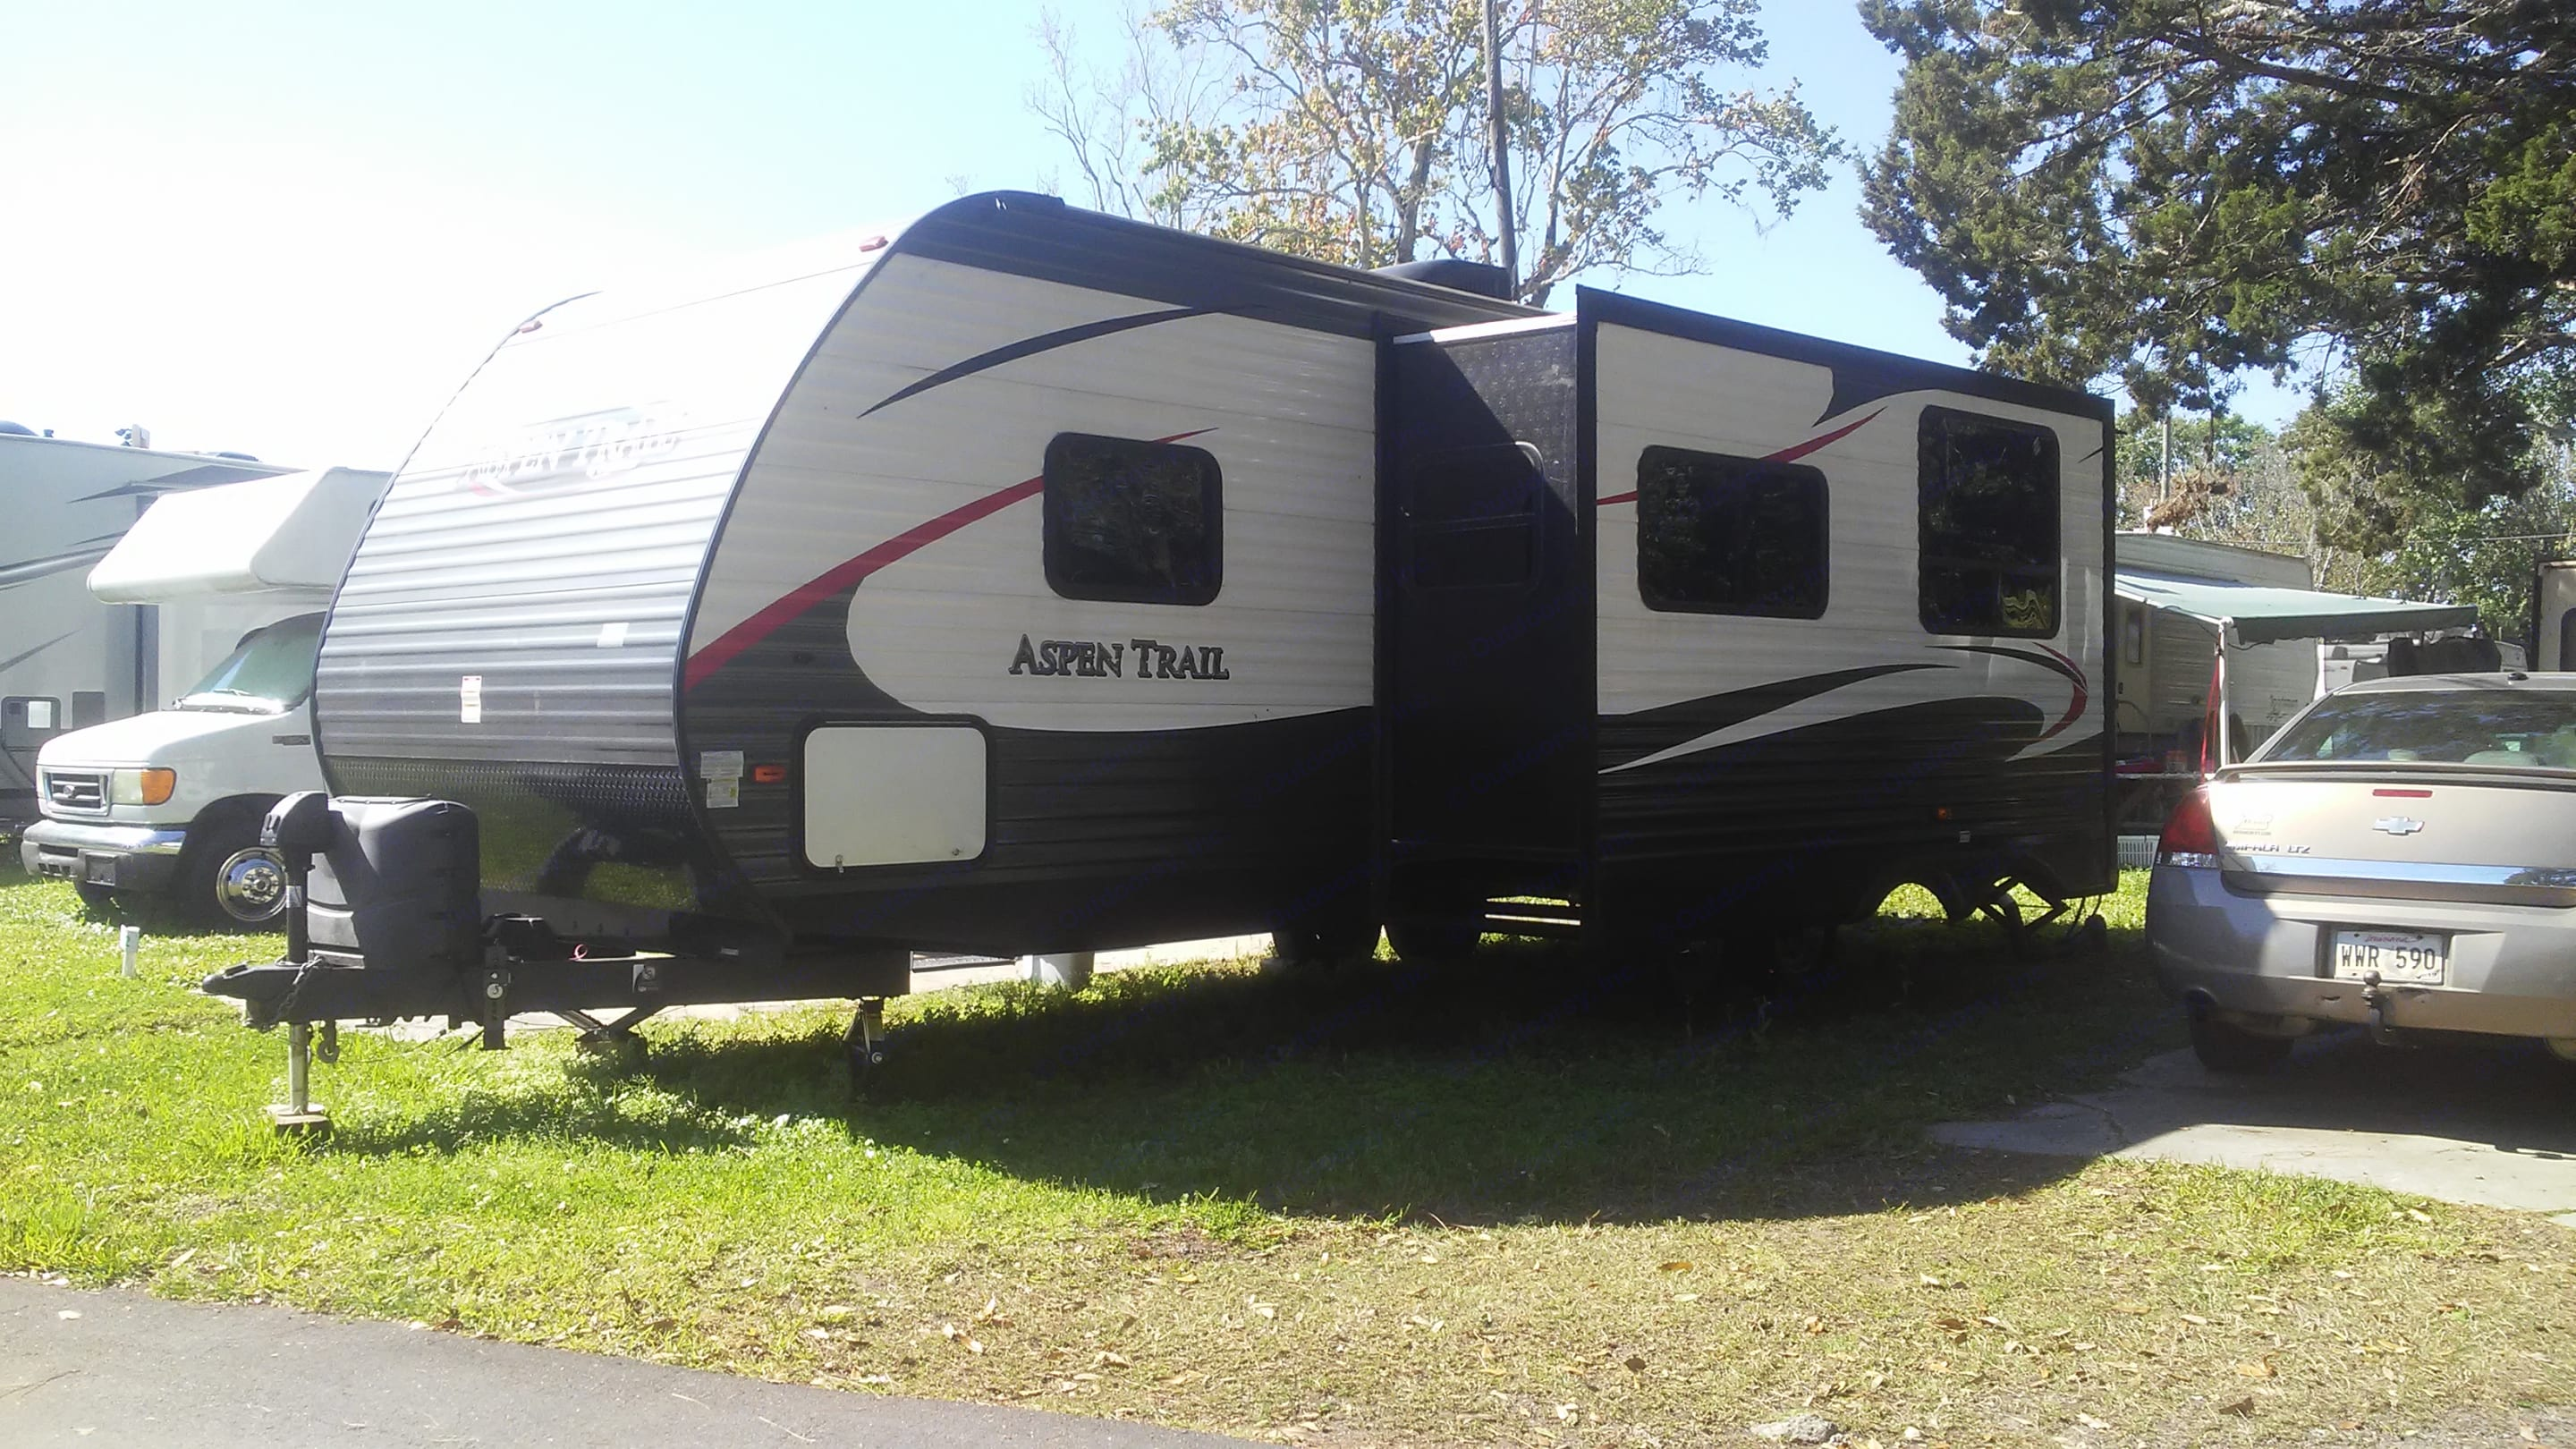 Slide-out is extended trailer also has 10 gallon water tank electrical hook-up for 50 Watts and comes with hoses for city water sewer connection for dump station. Aspen 2900s 2016